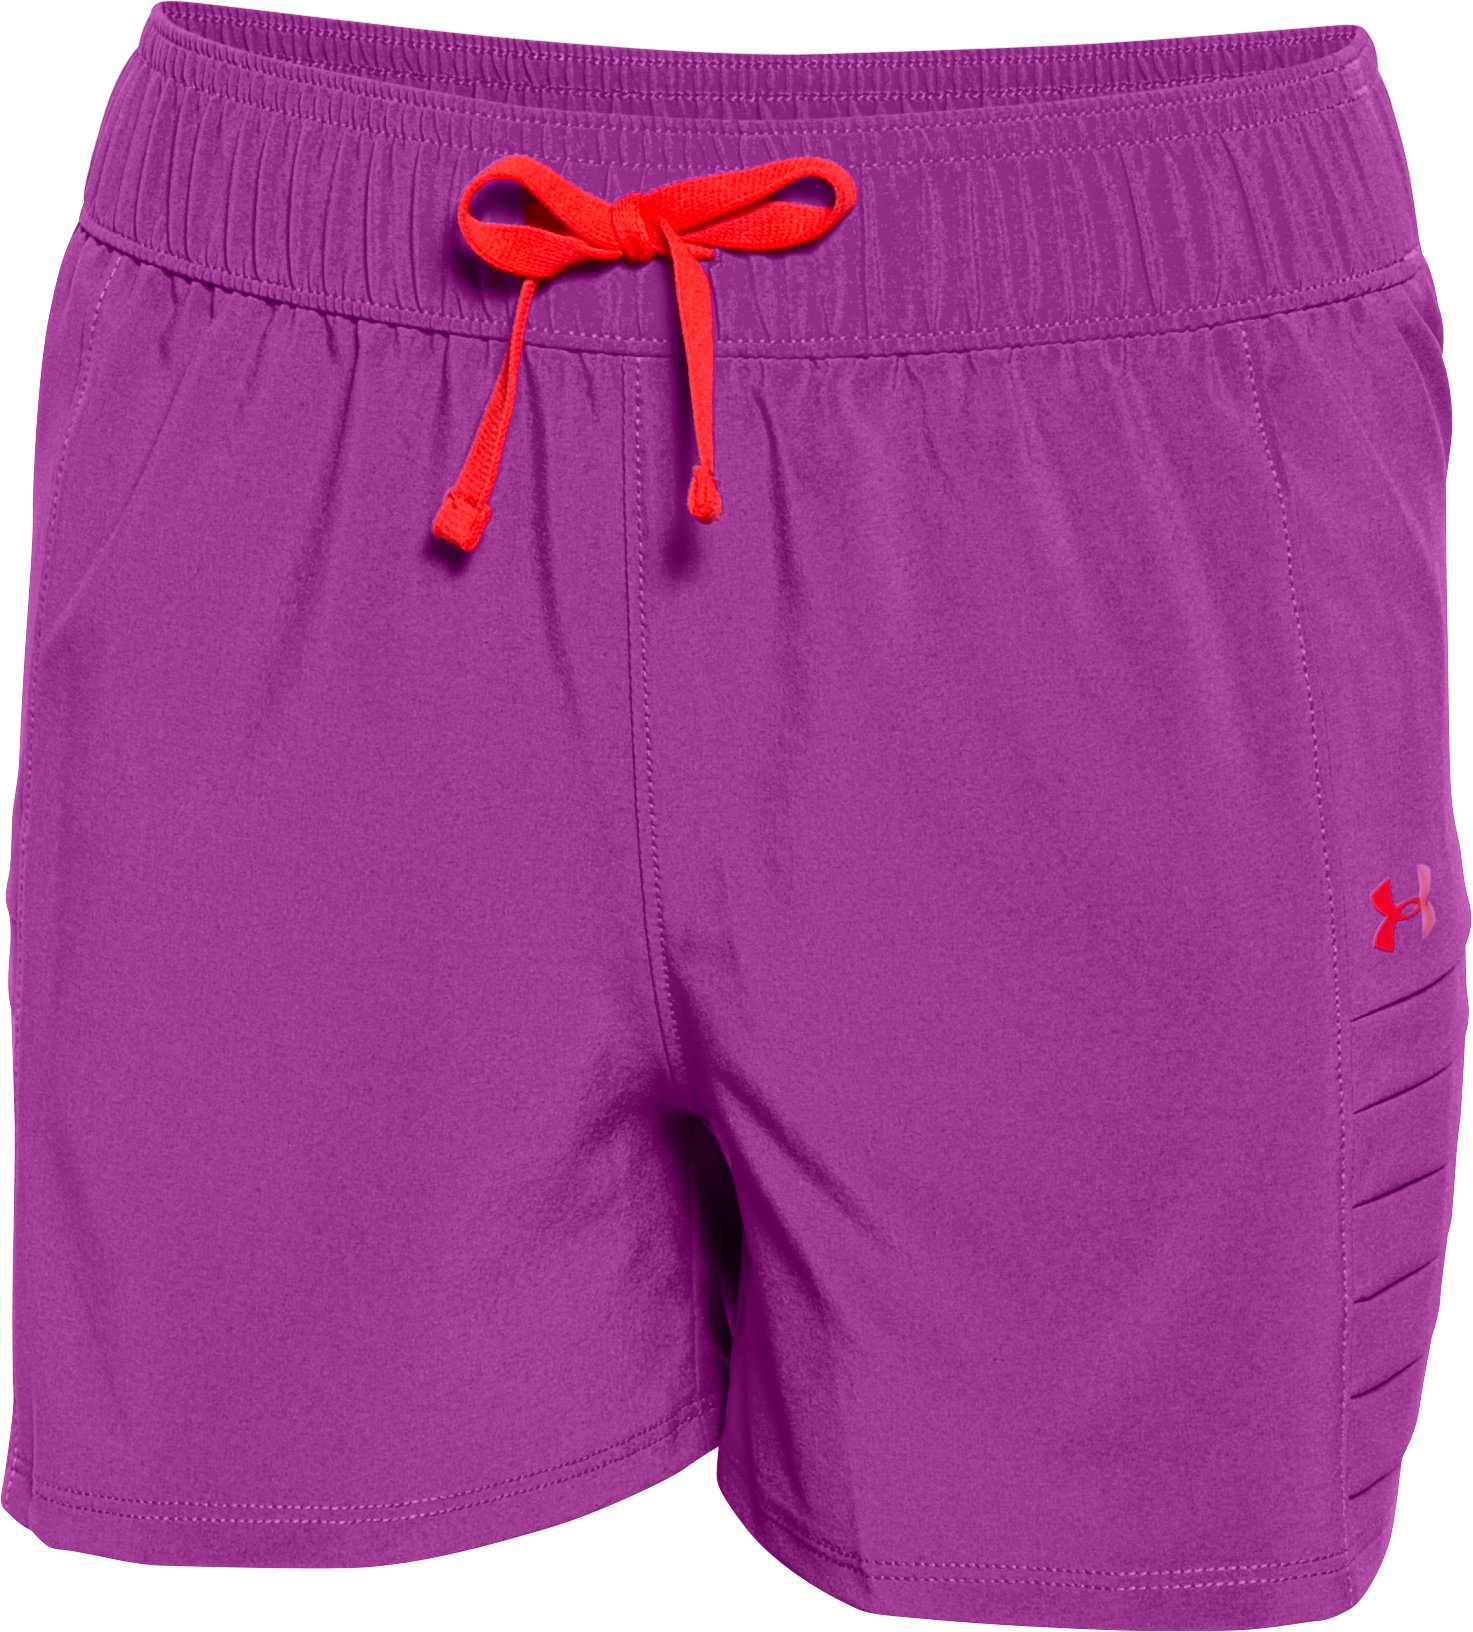 Girls' UA Woven Shorts, STROBE, undefined